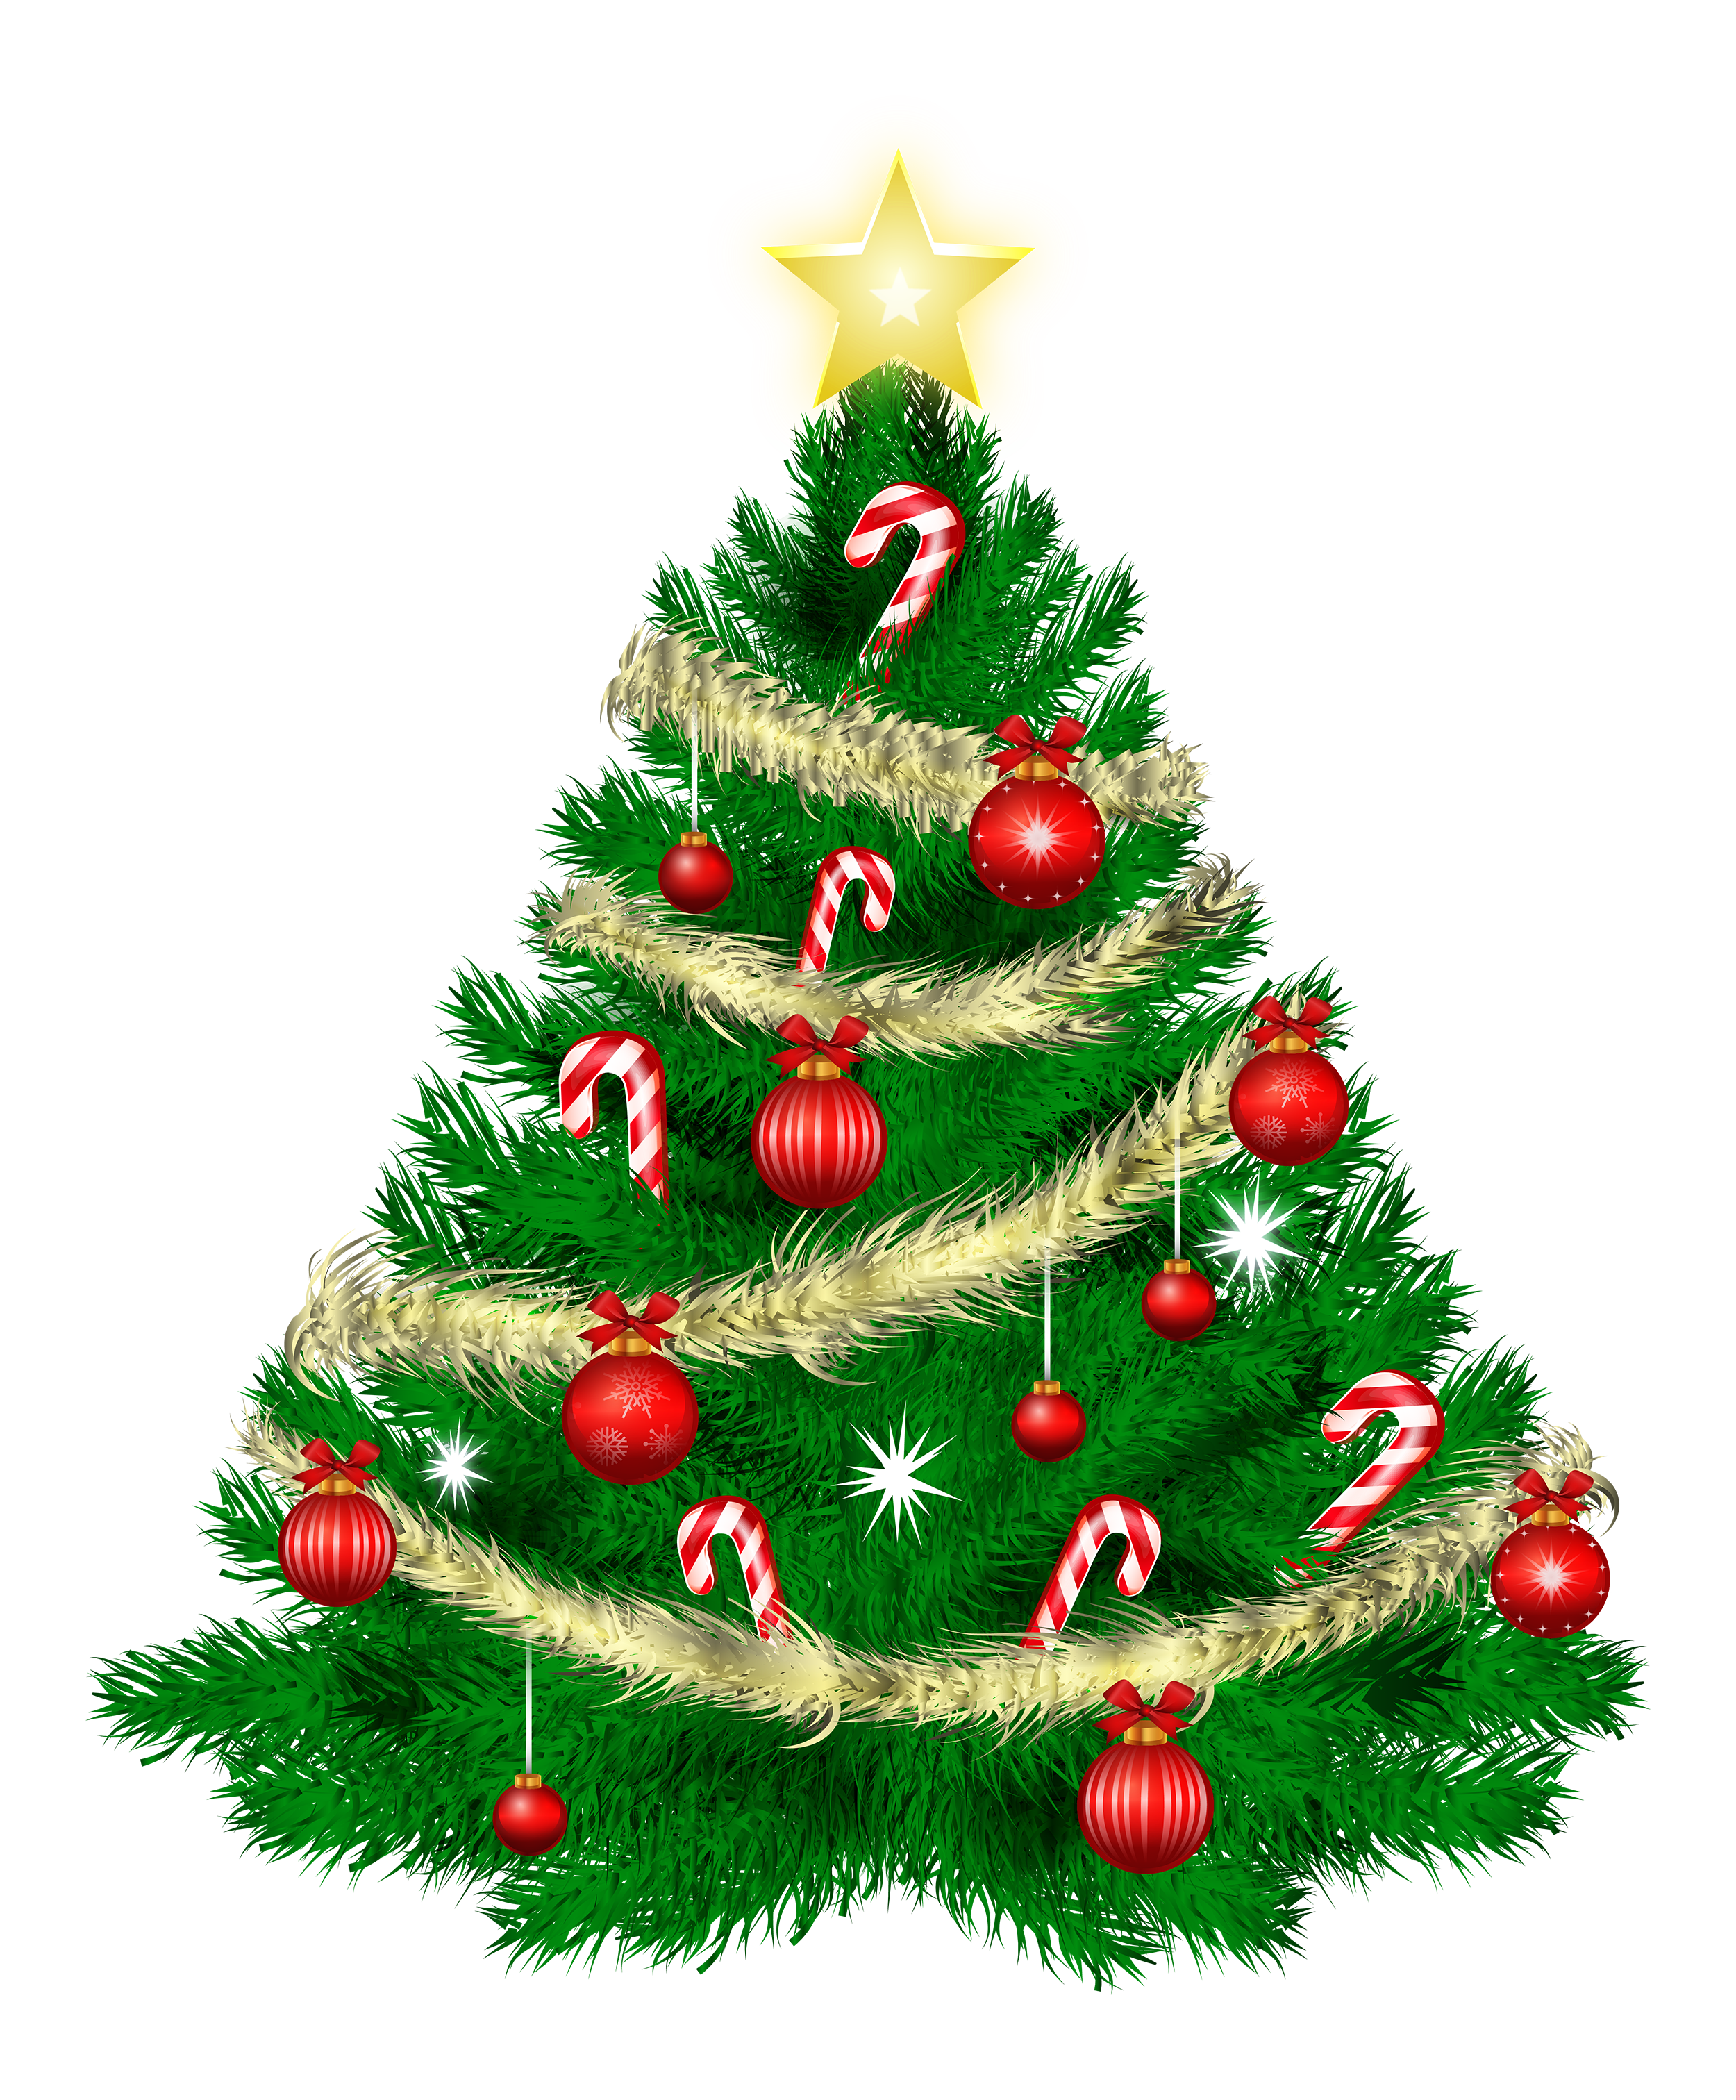 Christmas Tree PNG by dbszabo